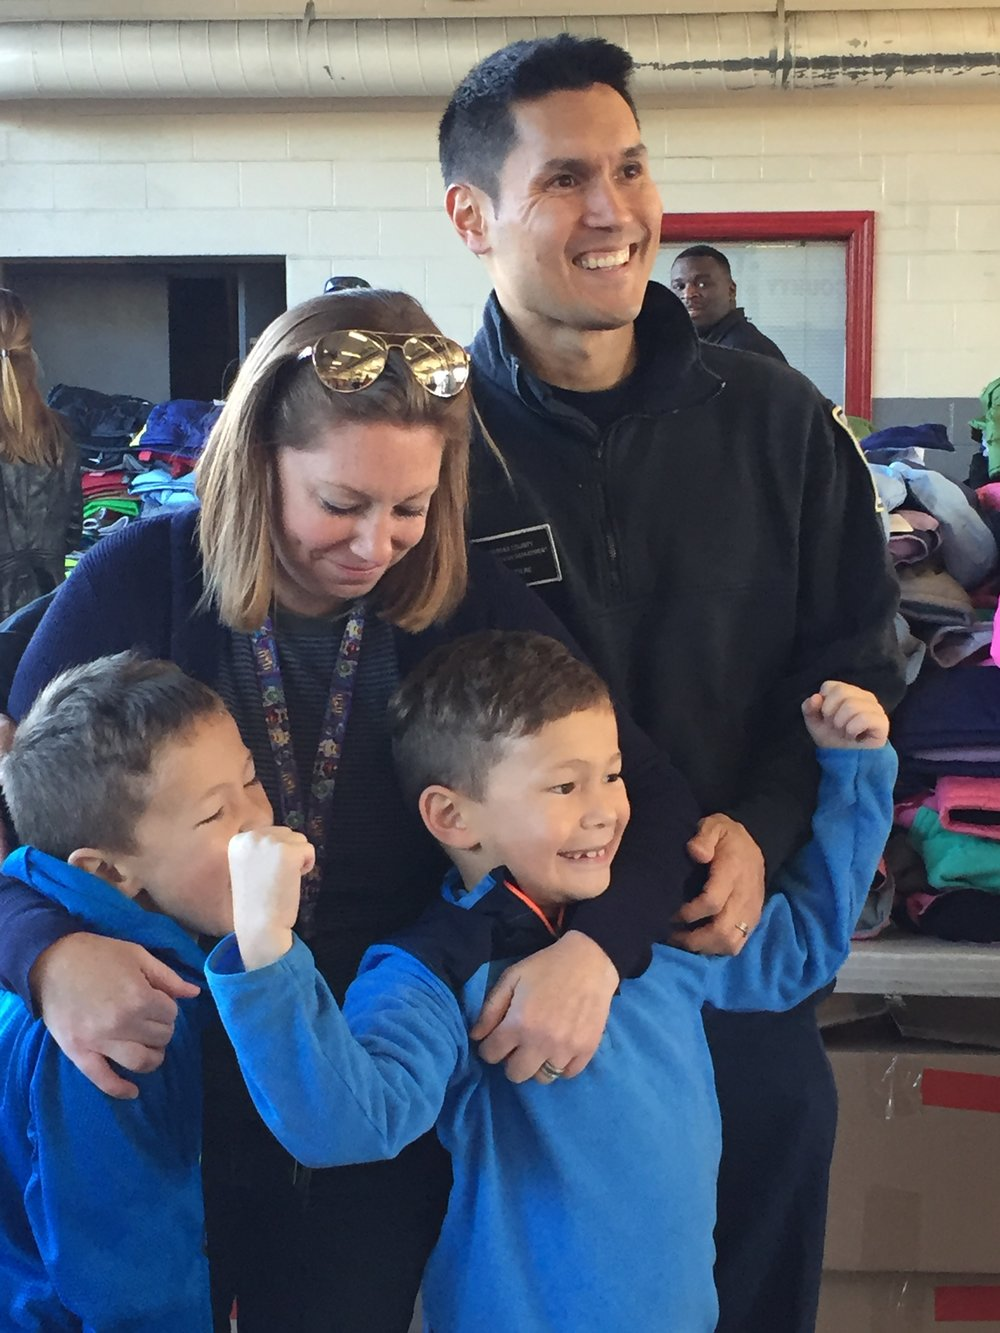 (Left to Right) My Family- Madden, Kelly, Maks and Ken Savittiere at the Coat Drive Oct. 2017